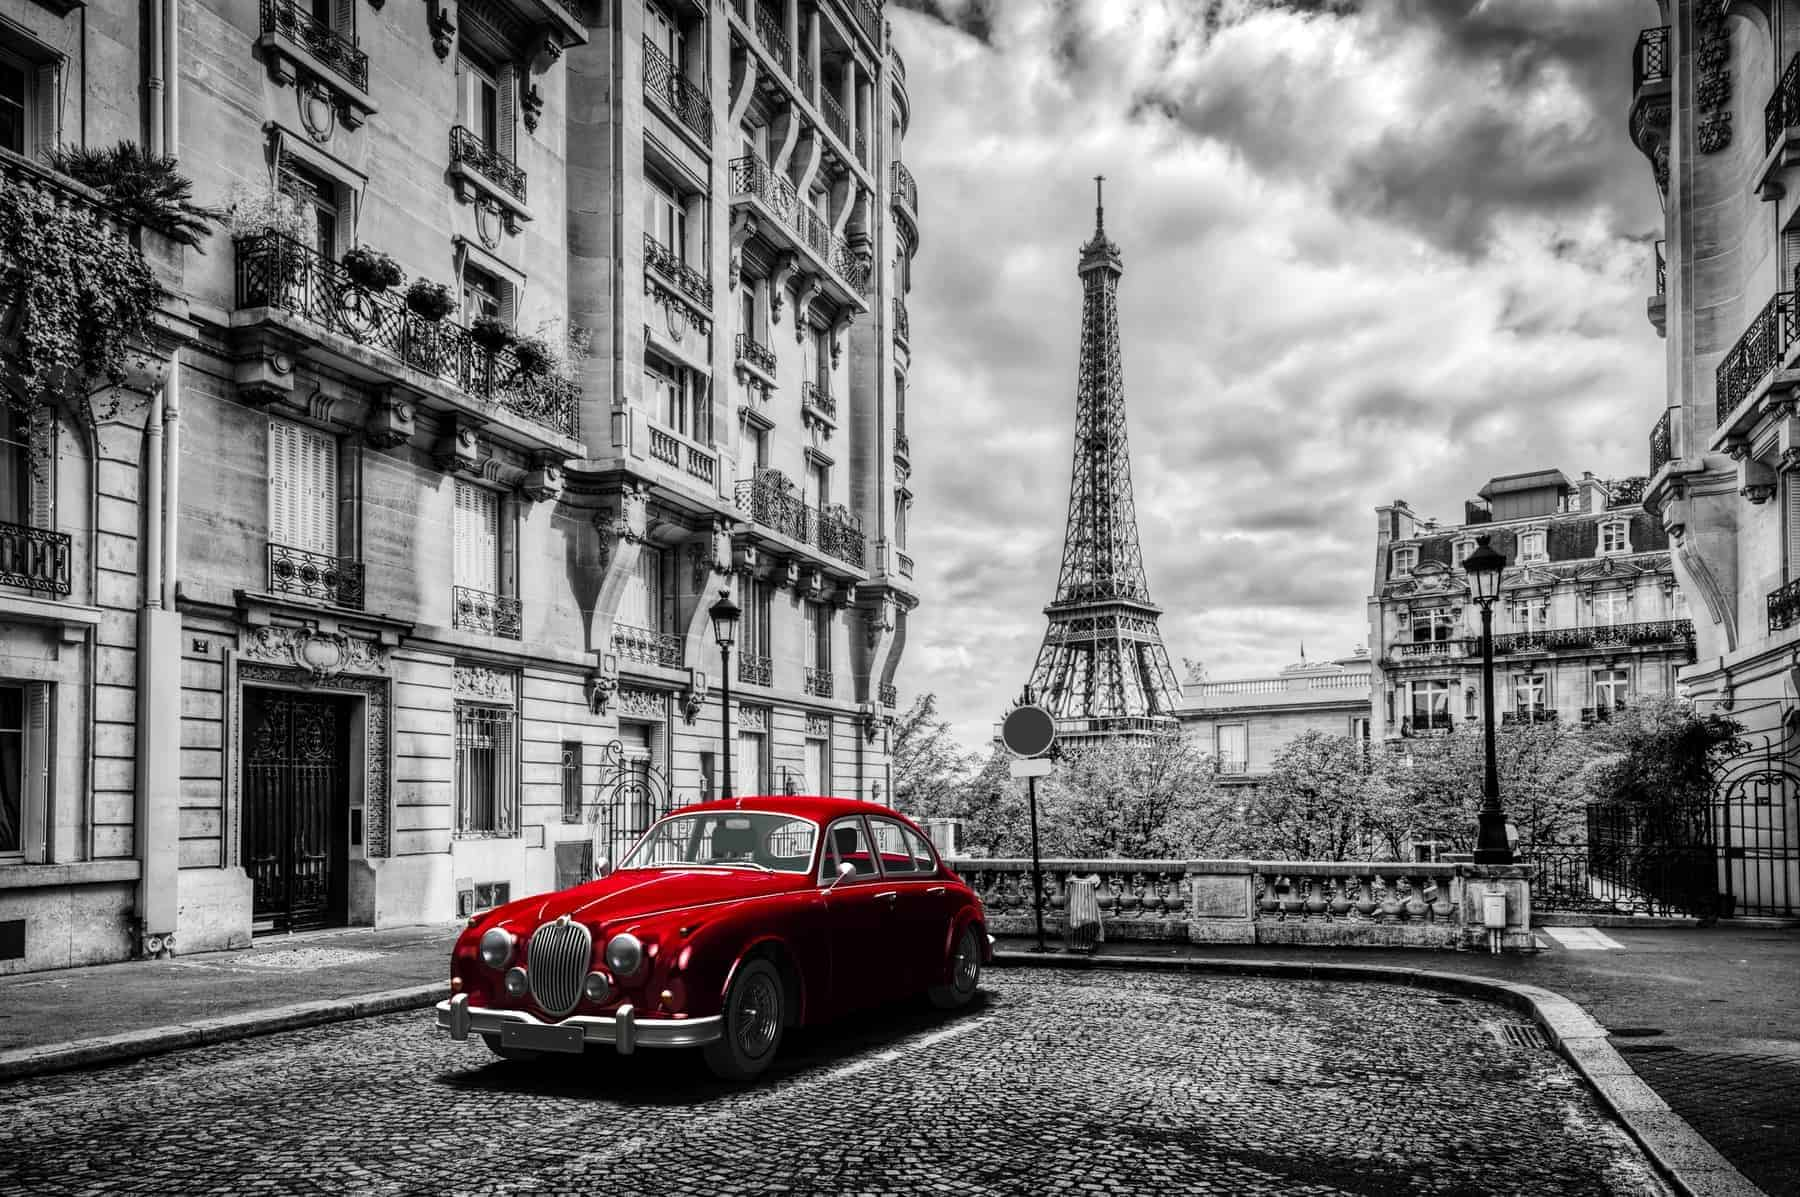 Artistic Paris, France. Eiffel Tower seen from the street with red retro limousine car. Black and white unique vintage composition.